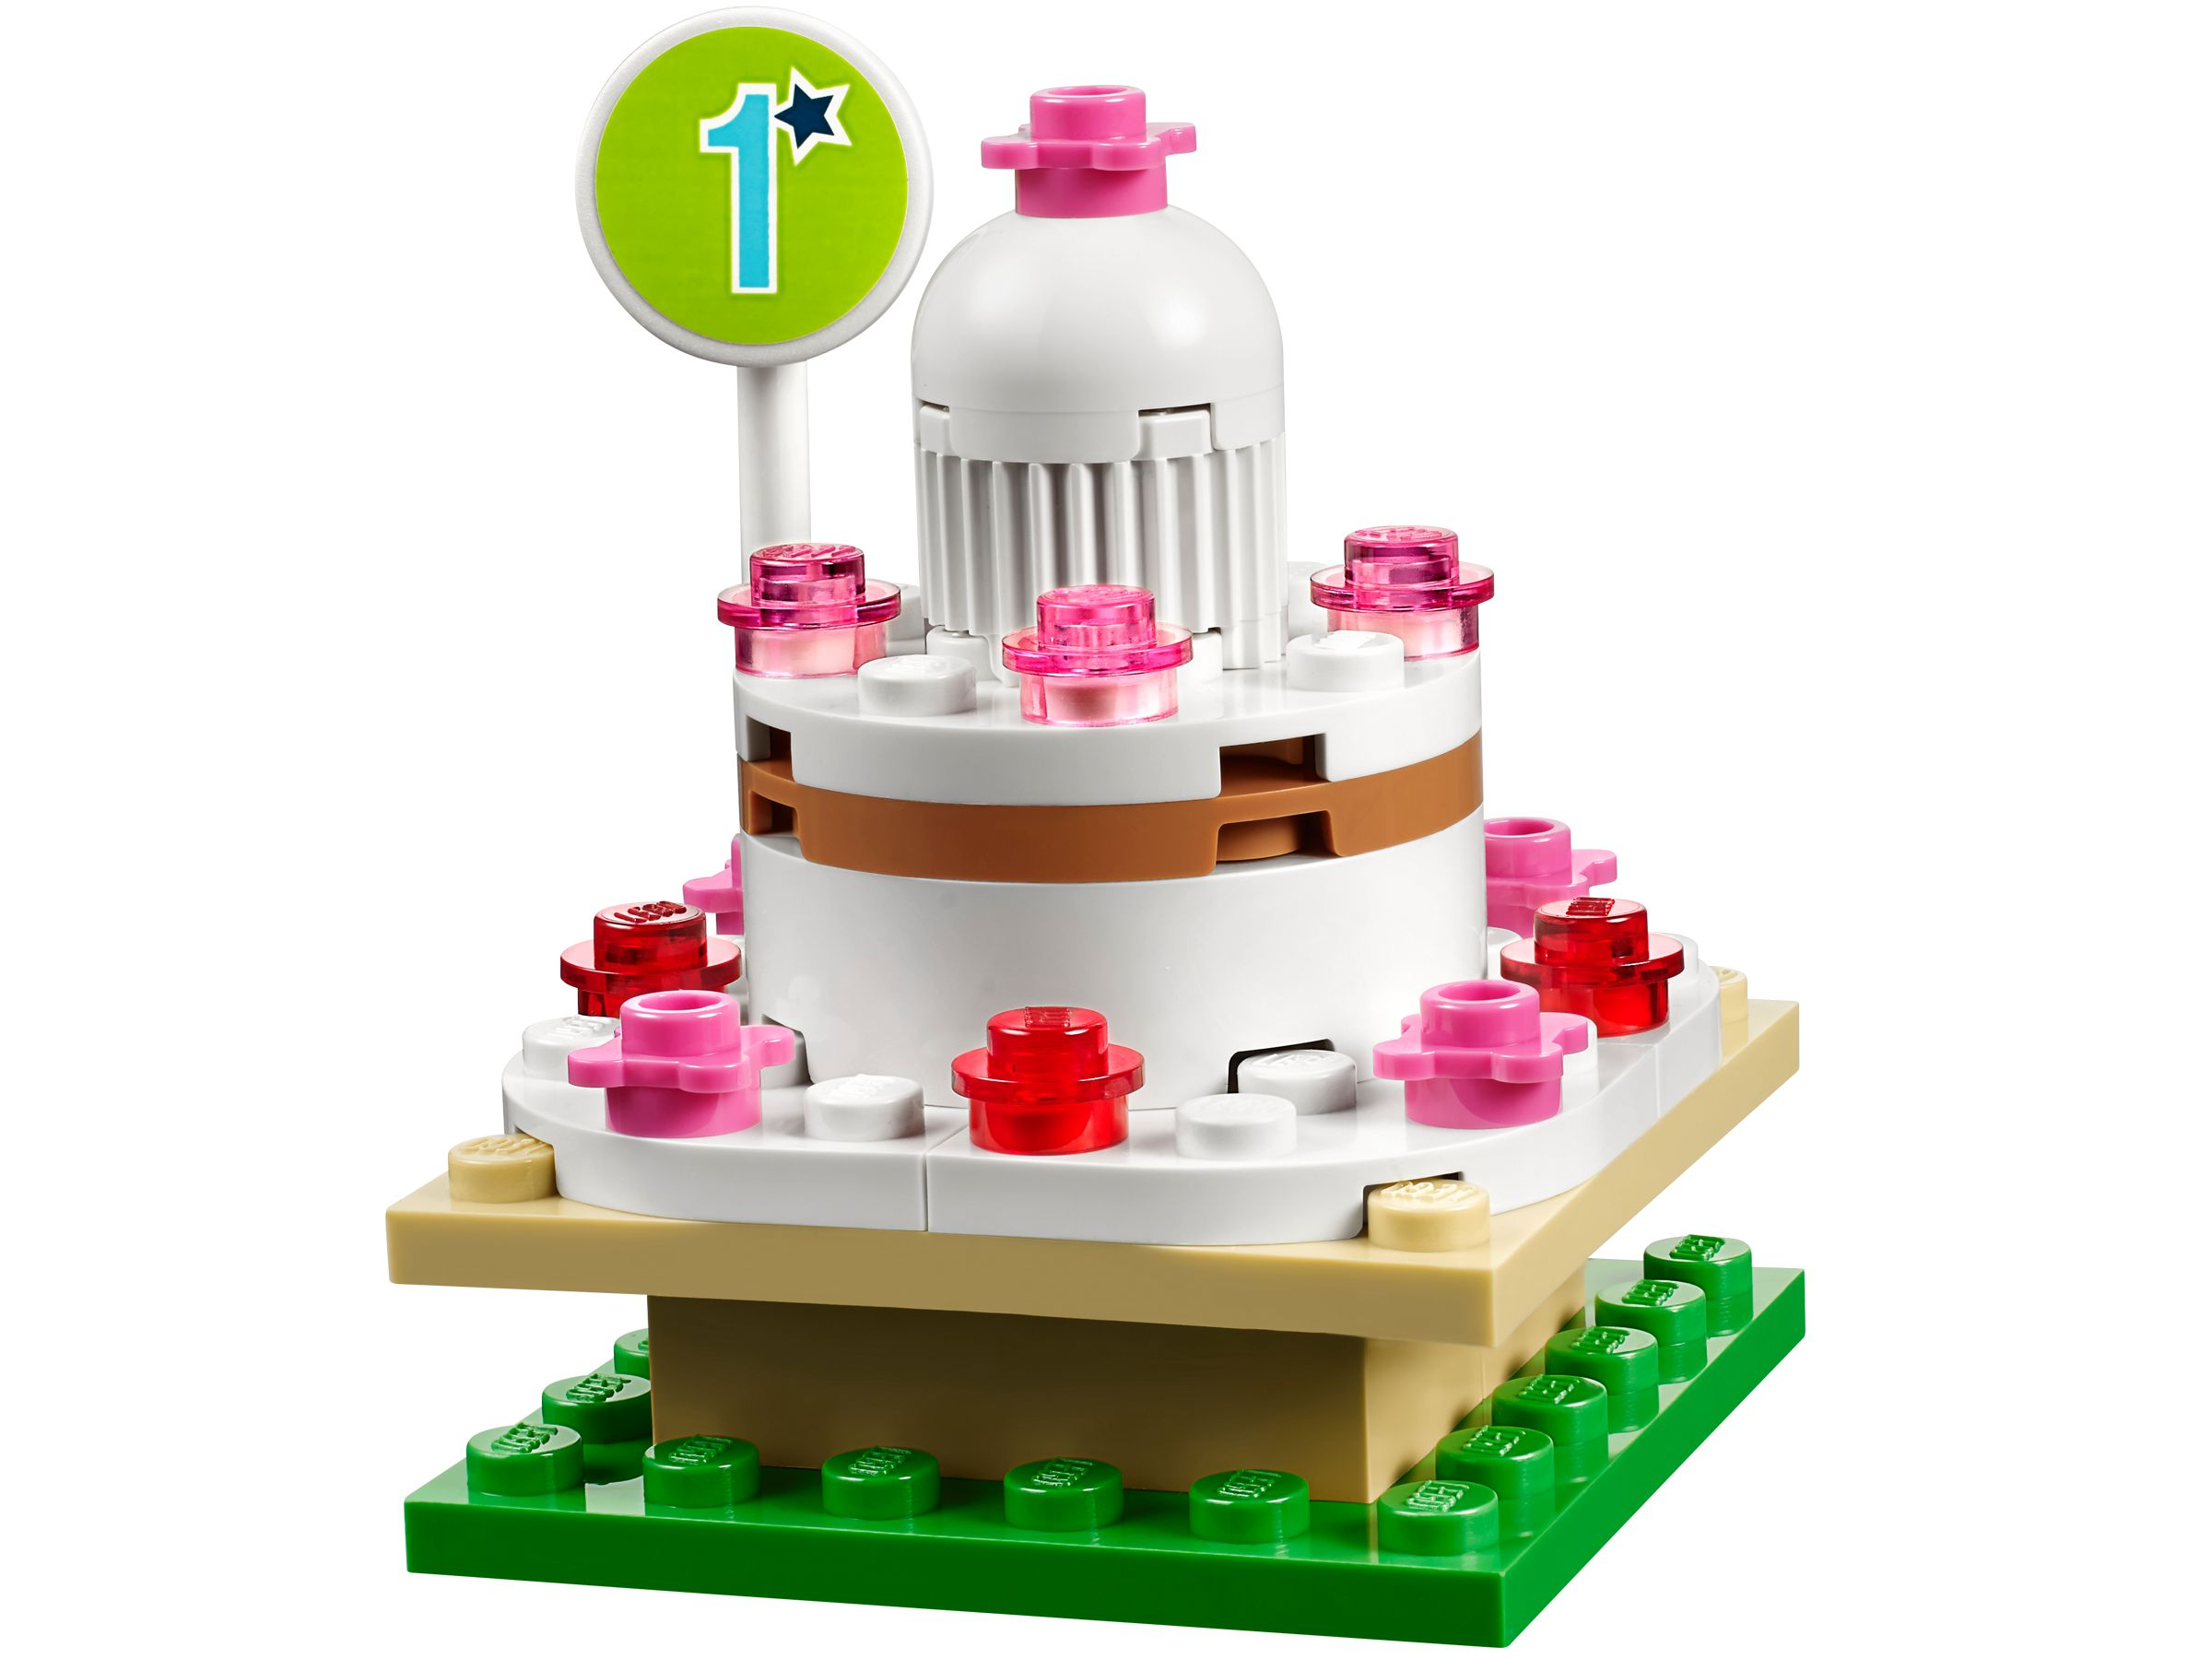 LEGO Friends 41056 Mobile Fernsehstation LEGO_41056_alt4.jpg